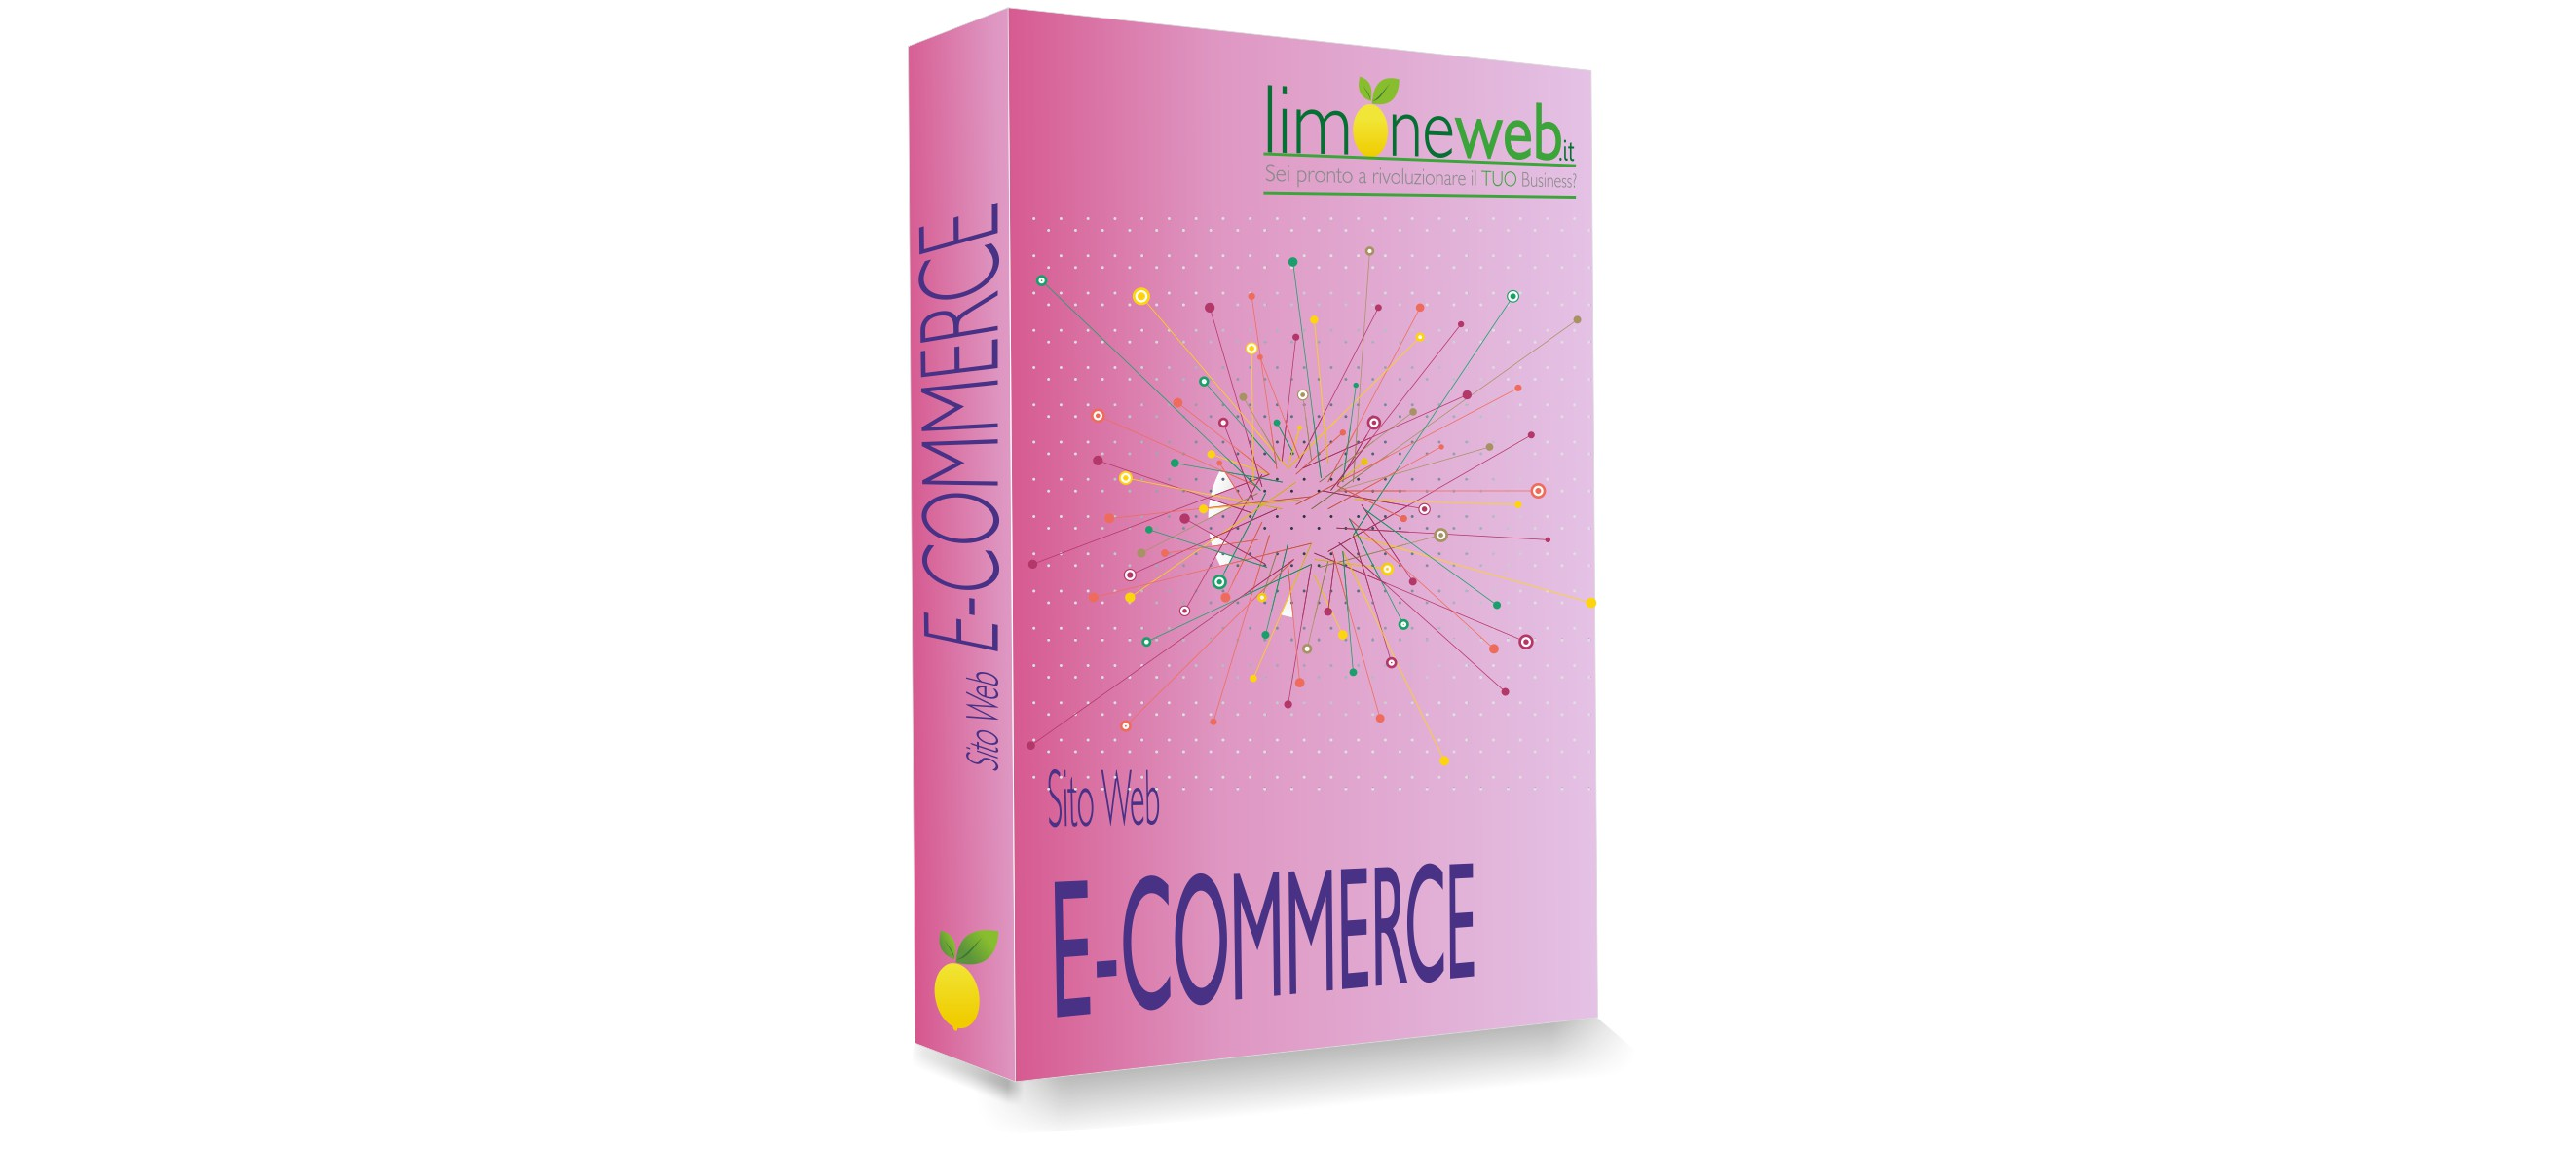 LimoneWeb.it - Sito Web E-Commerce